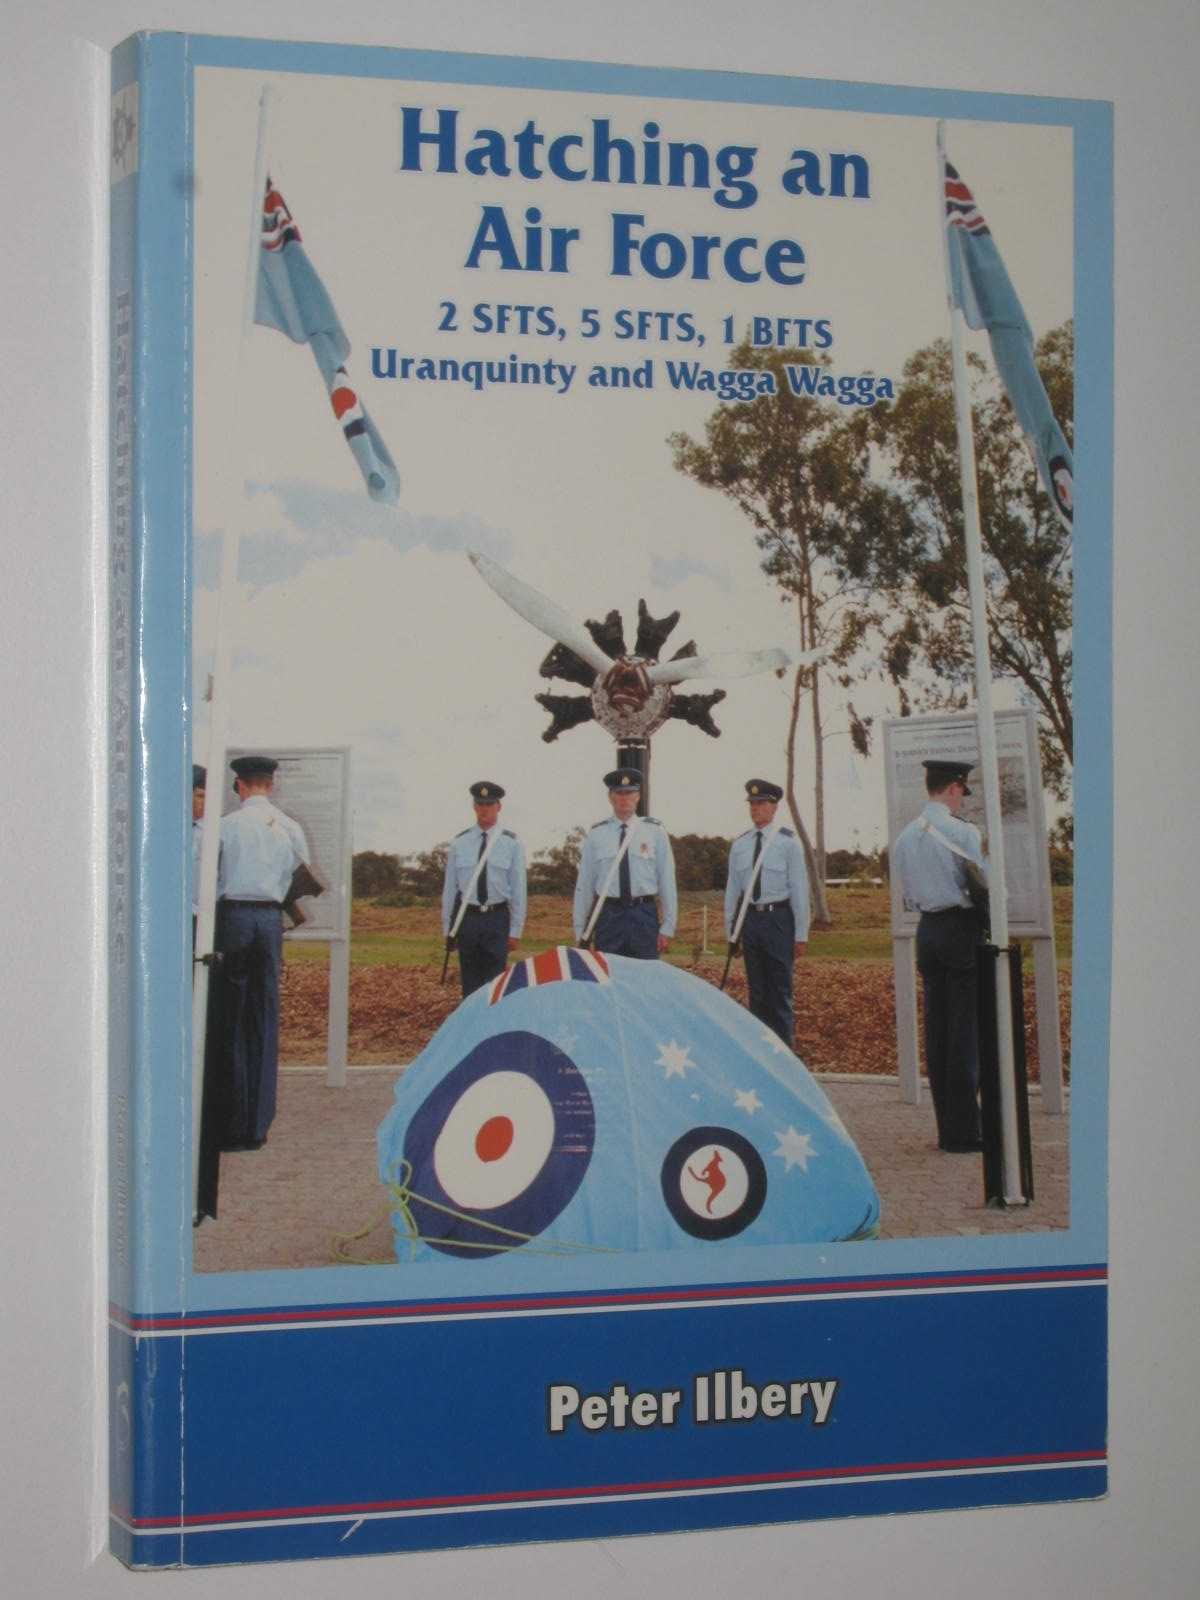 Image for Hatching an Airforce : 2 SFTS, 5 SFTS, 1 BFTS Uranquinty and Wagga Wagga